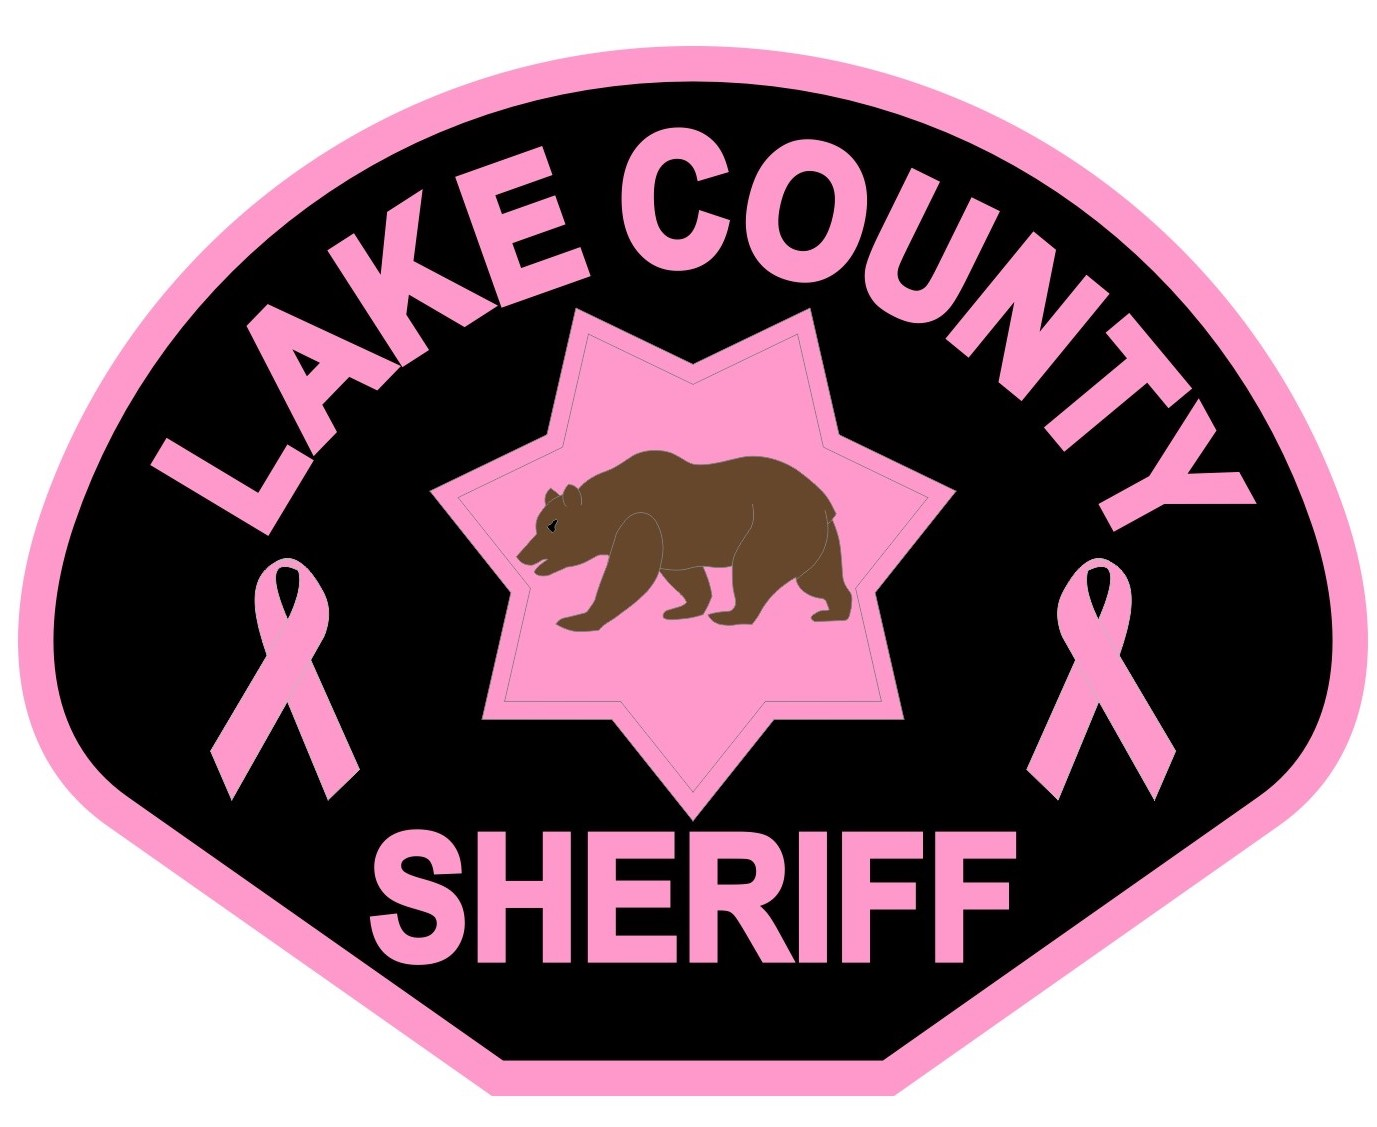 Lake County Sheriff Office (CA) - PINK PATCH.jpg